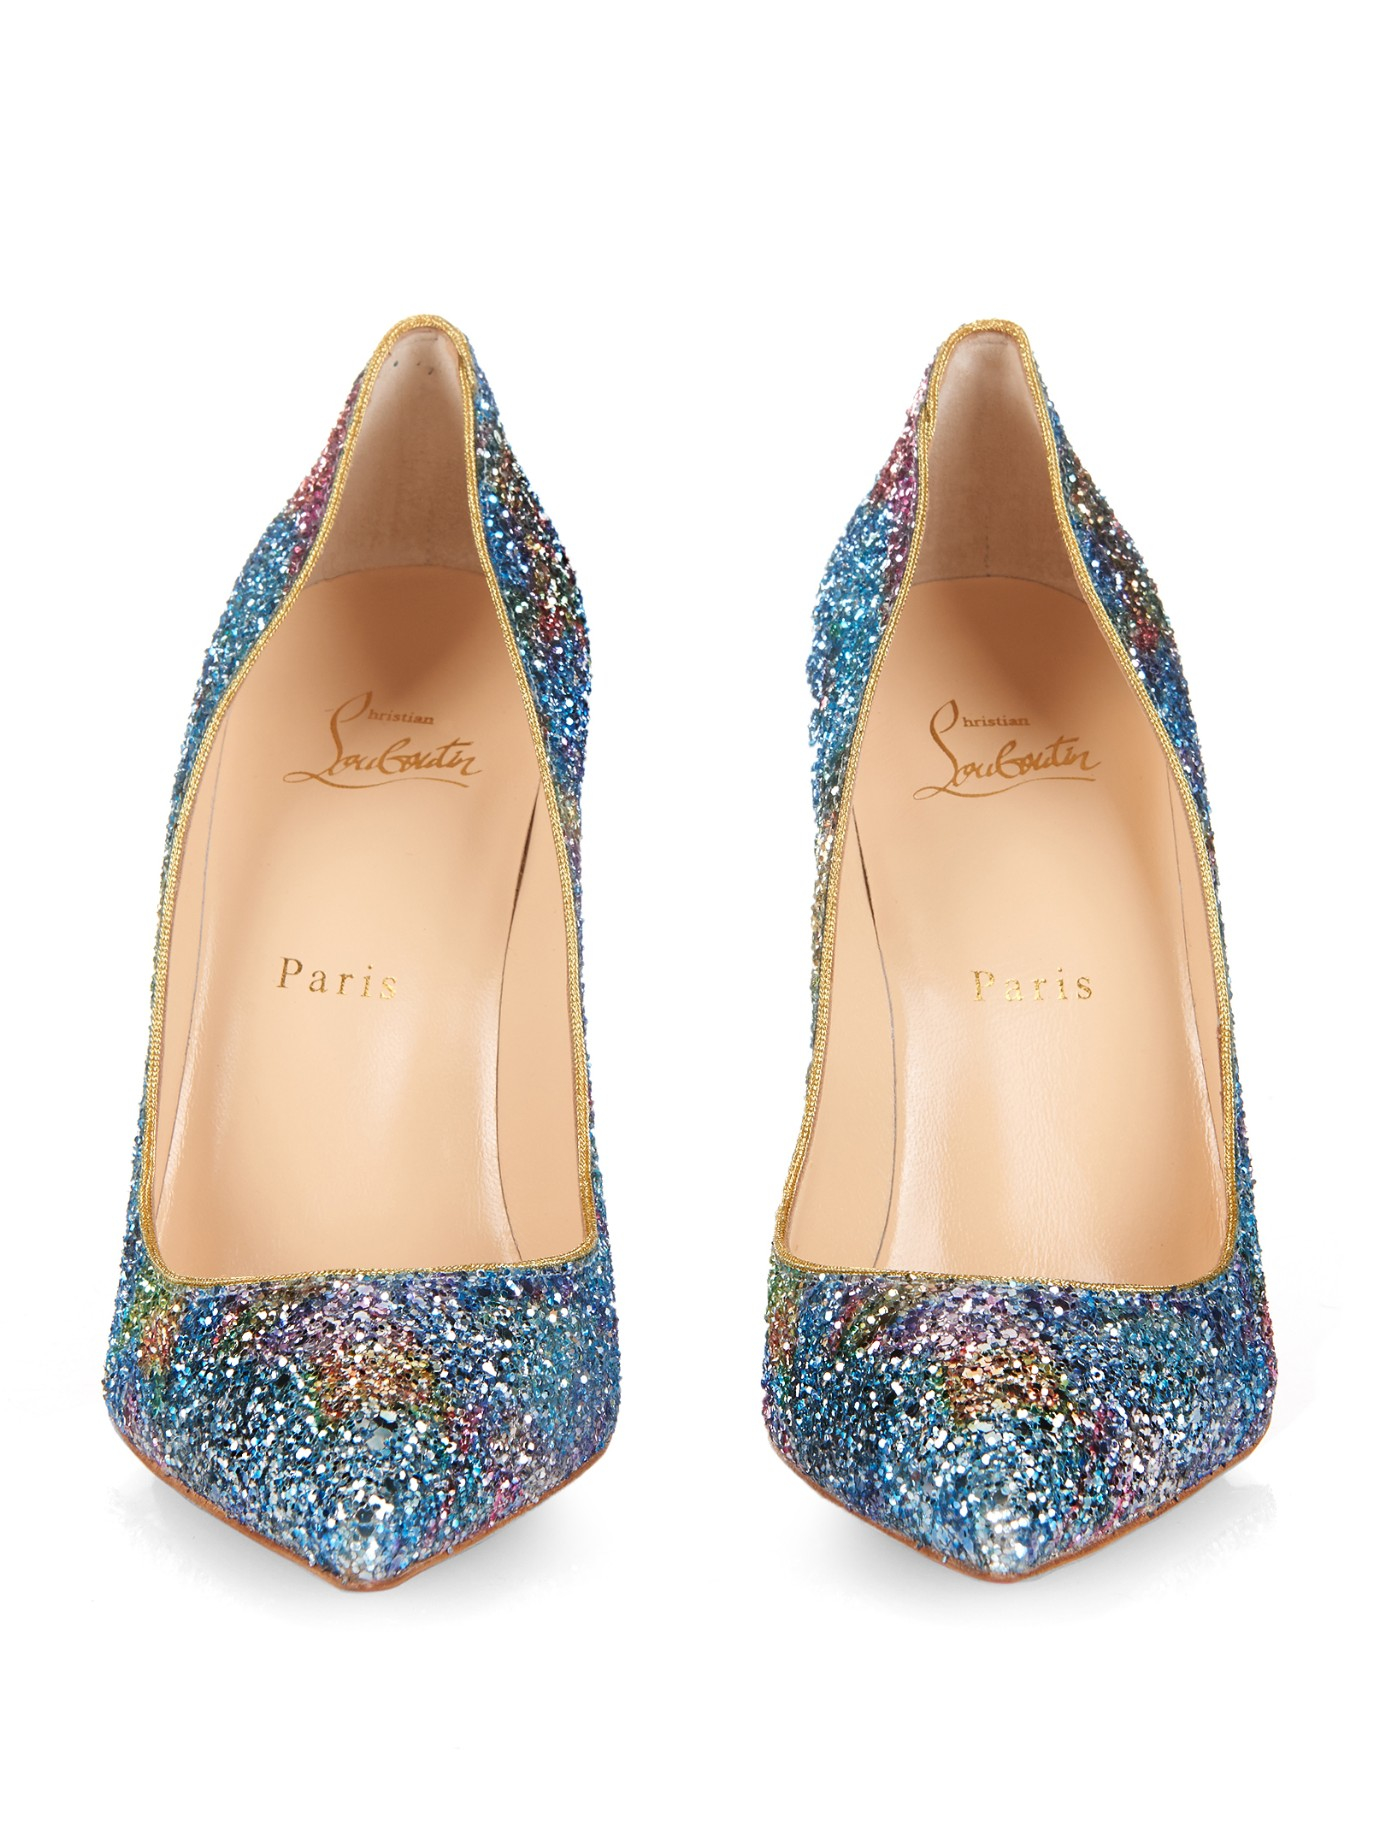 72f3d58ee029 Lyst - Christian Louboutin Pigalle Follies 100mm Pumps in Blue